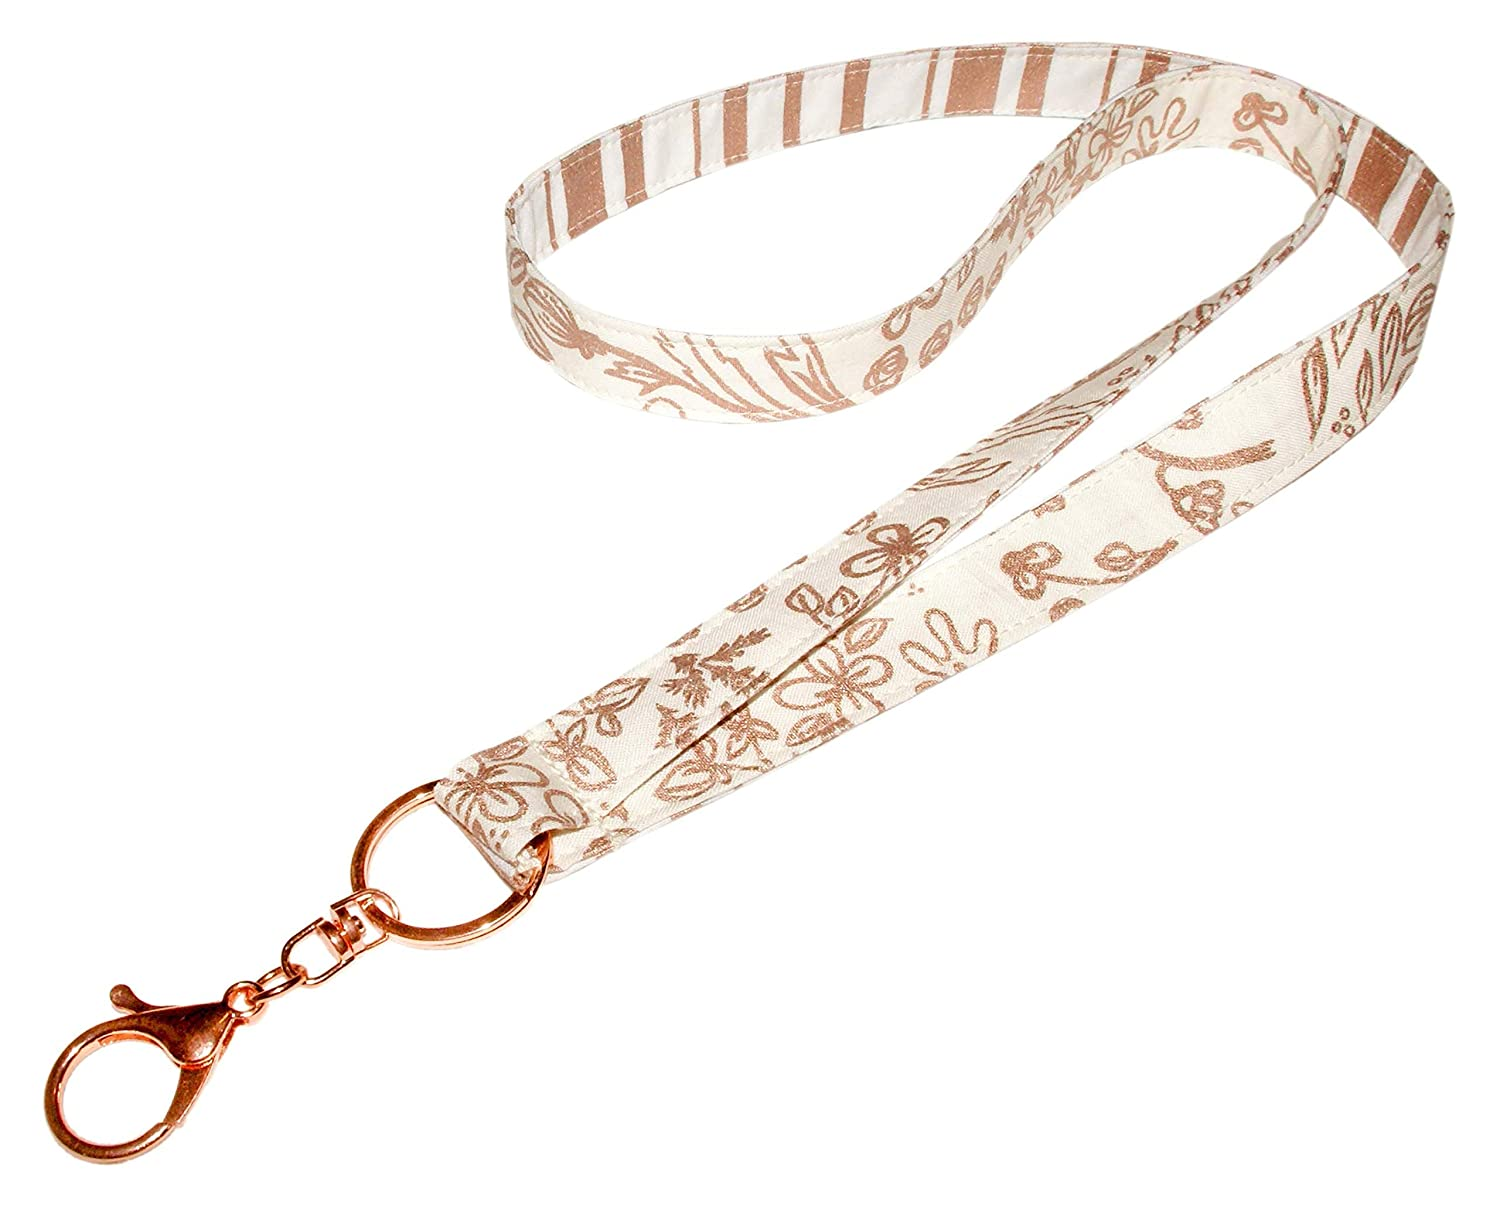 Key Lanyard Neck Strap 3//4 x 36 Inch With Swivel Clip ID Badge Holder Floral Vines and Stripes on Winter White Rose Gold and Metallic Print Reversible Lanyard